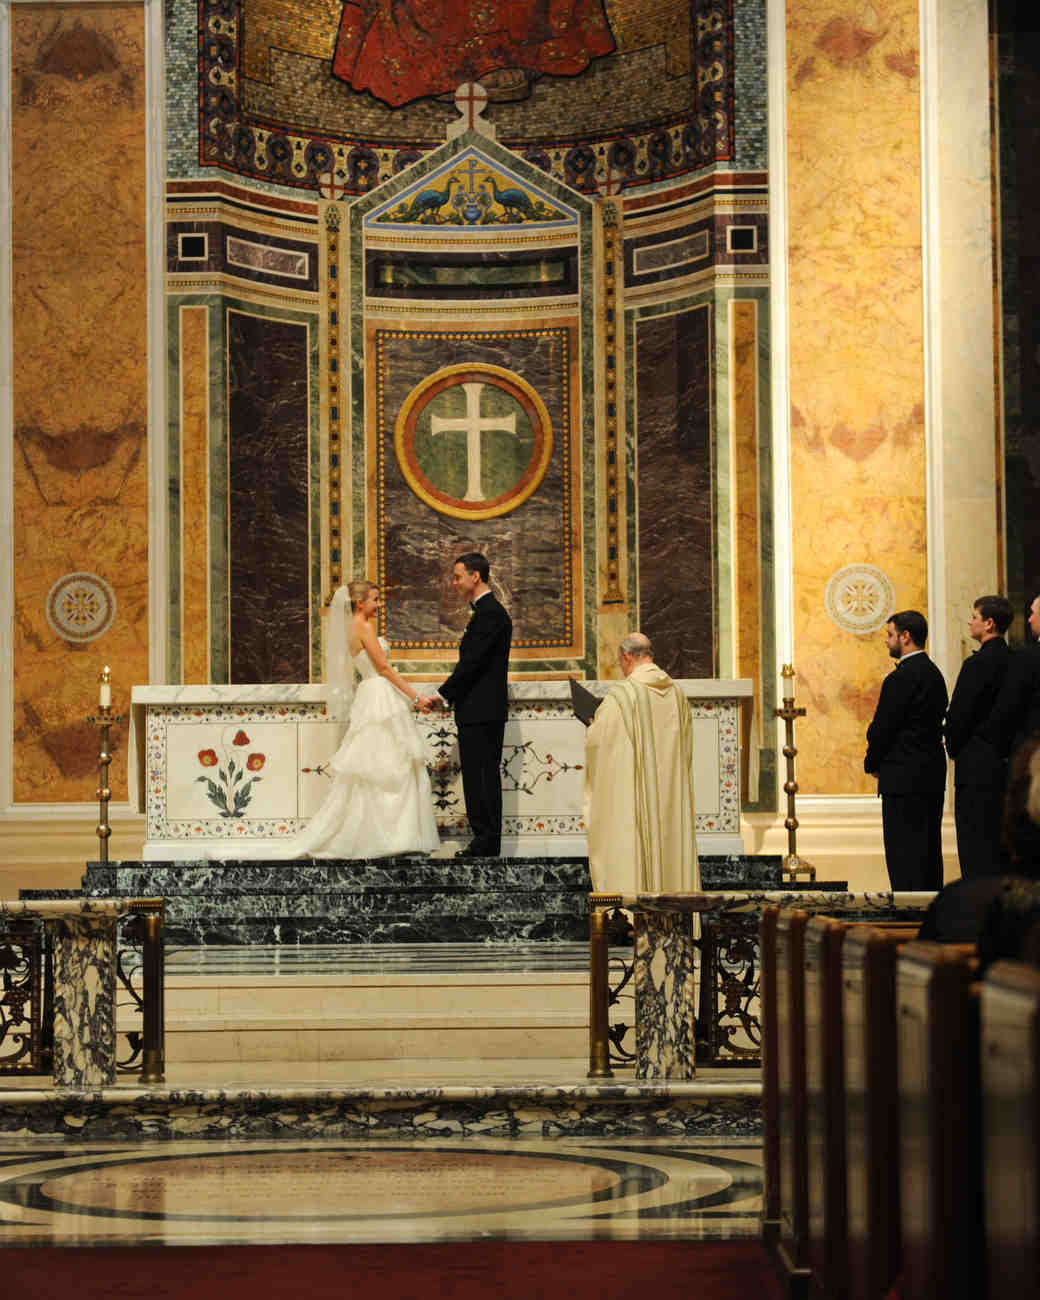 Catholic Wedding Readings: 11 Unexpected Wedding Ceremony Readings For Your Big Day